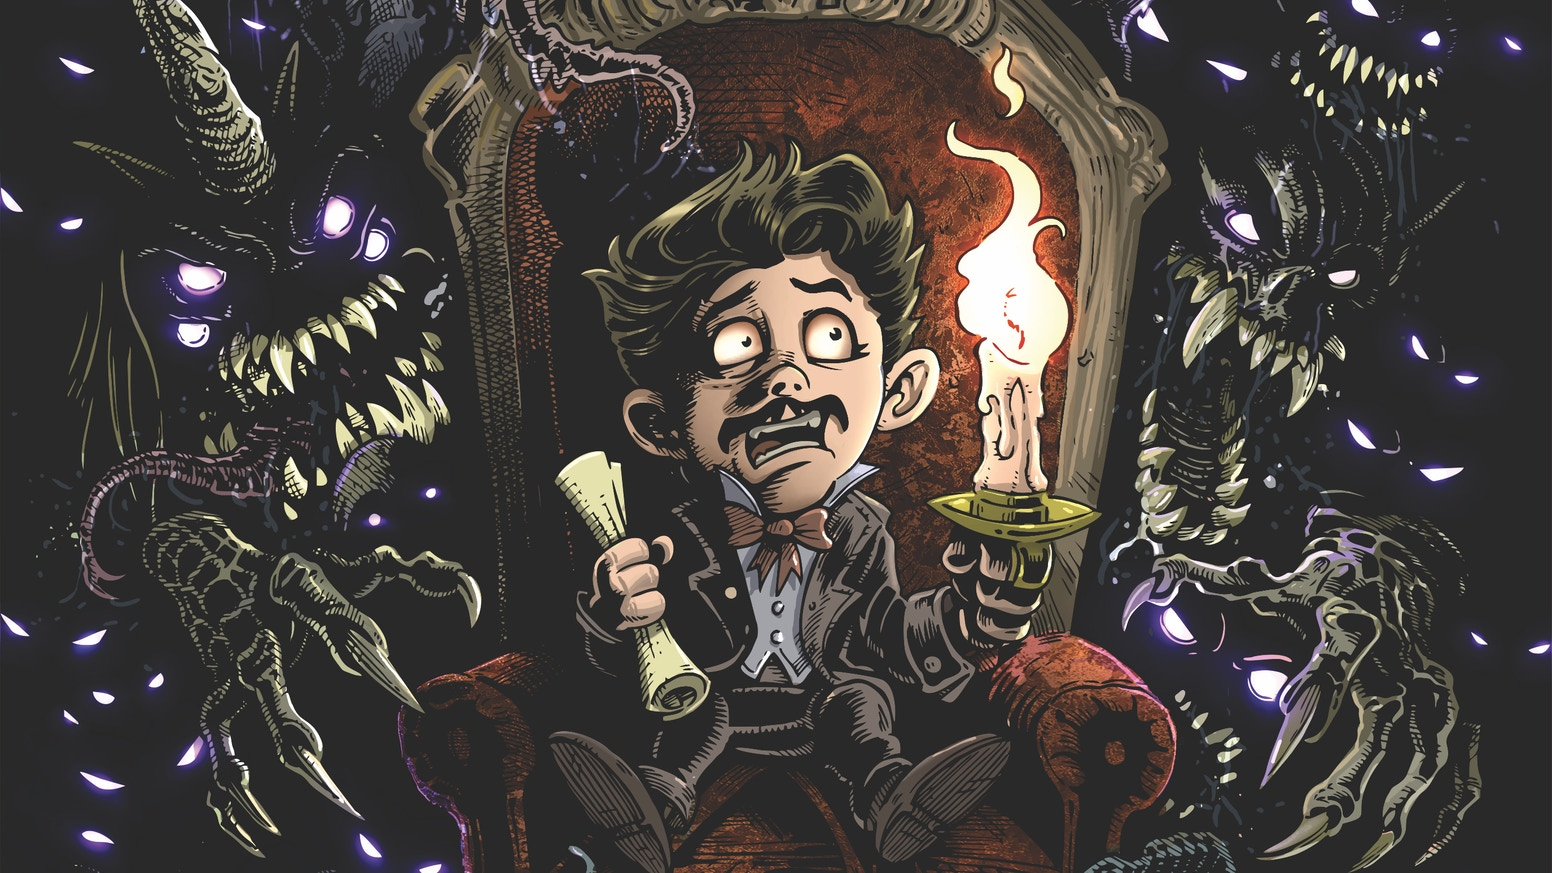 The third issue of an epic fantasy adventure through a nightmare world of mythological gods & monsters inside Edgar Allan Poe's head!